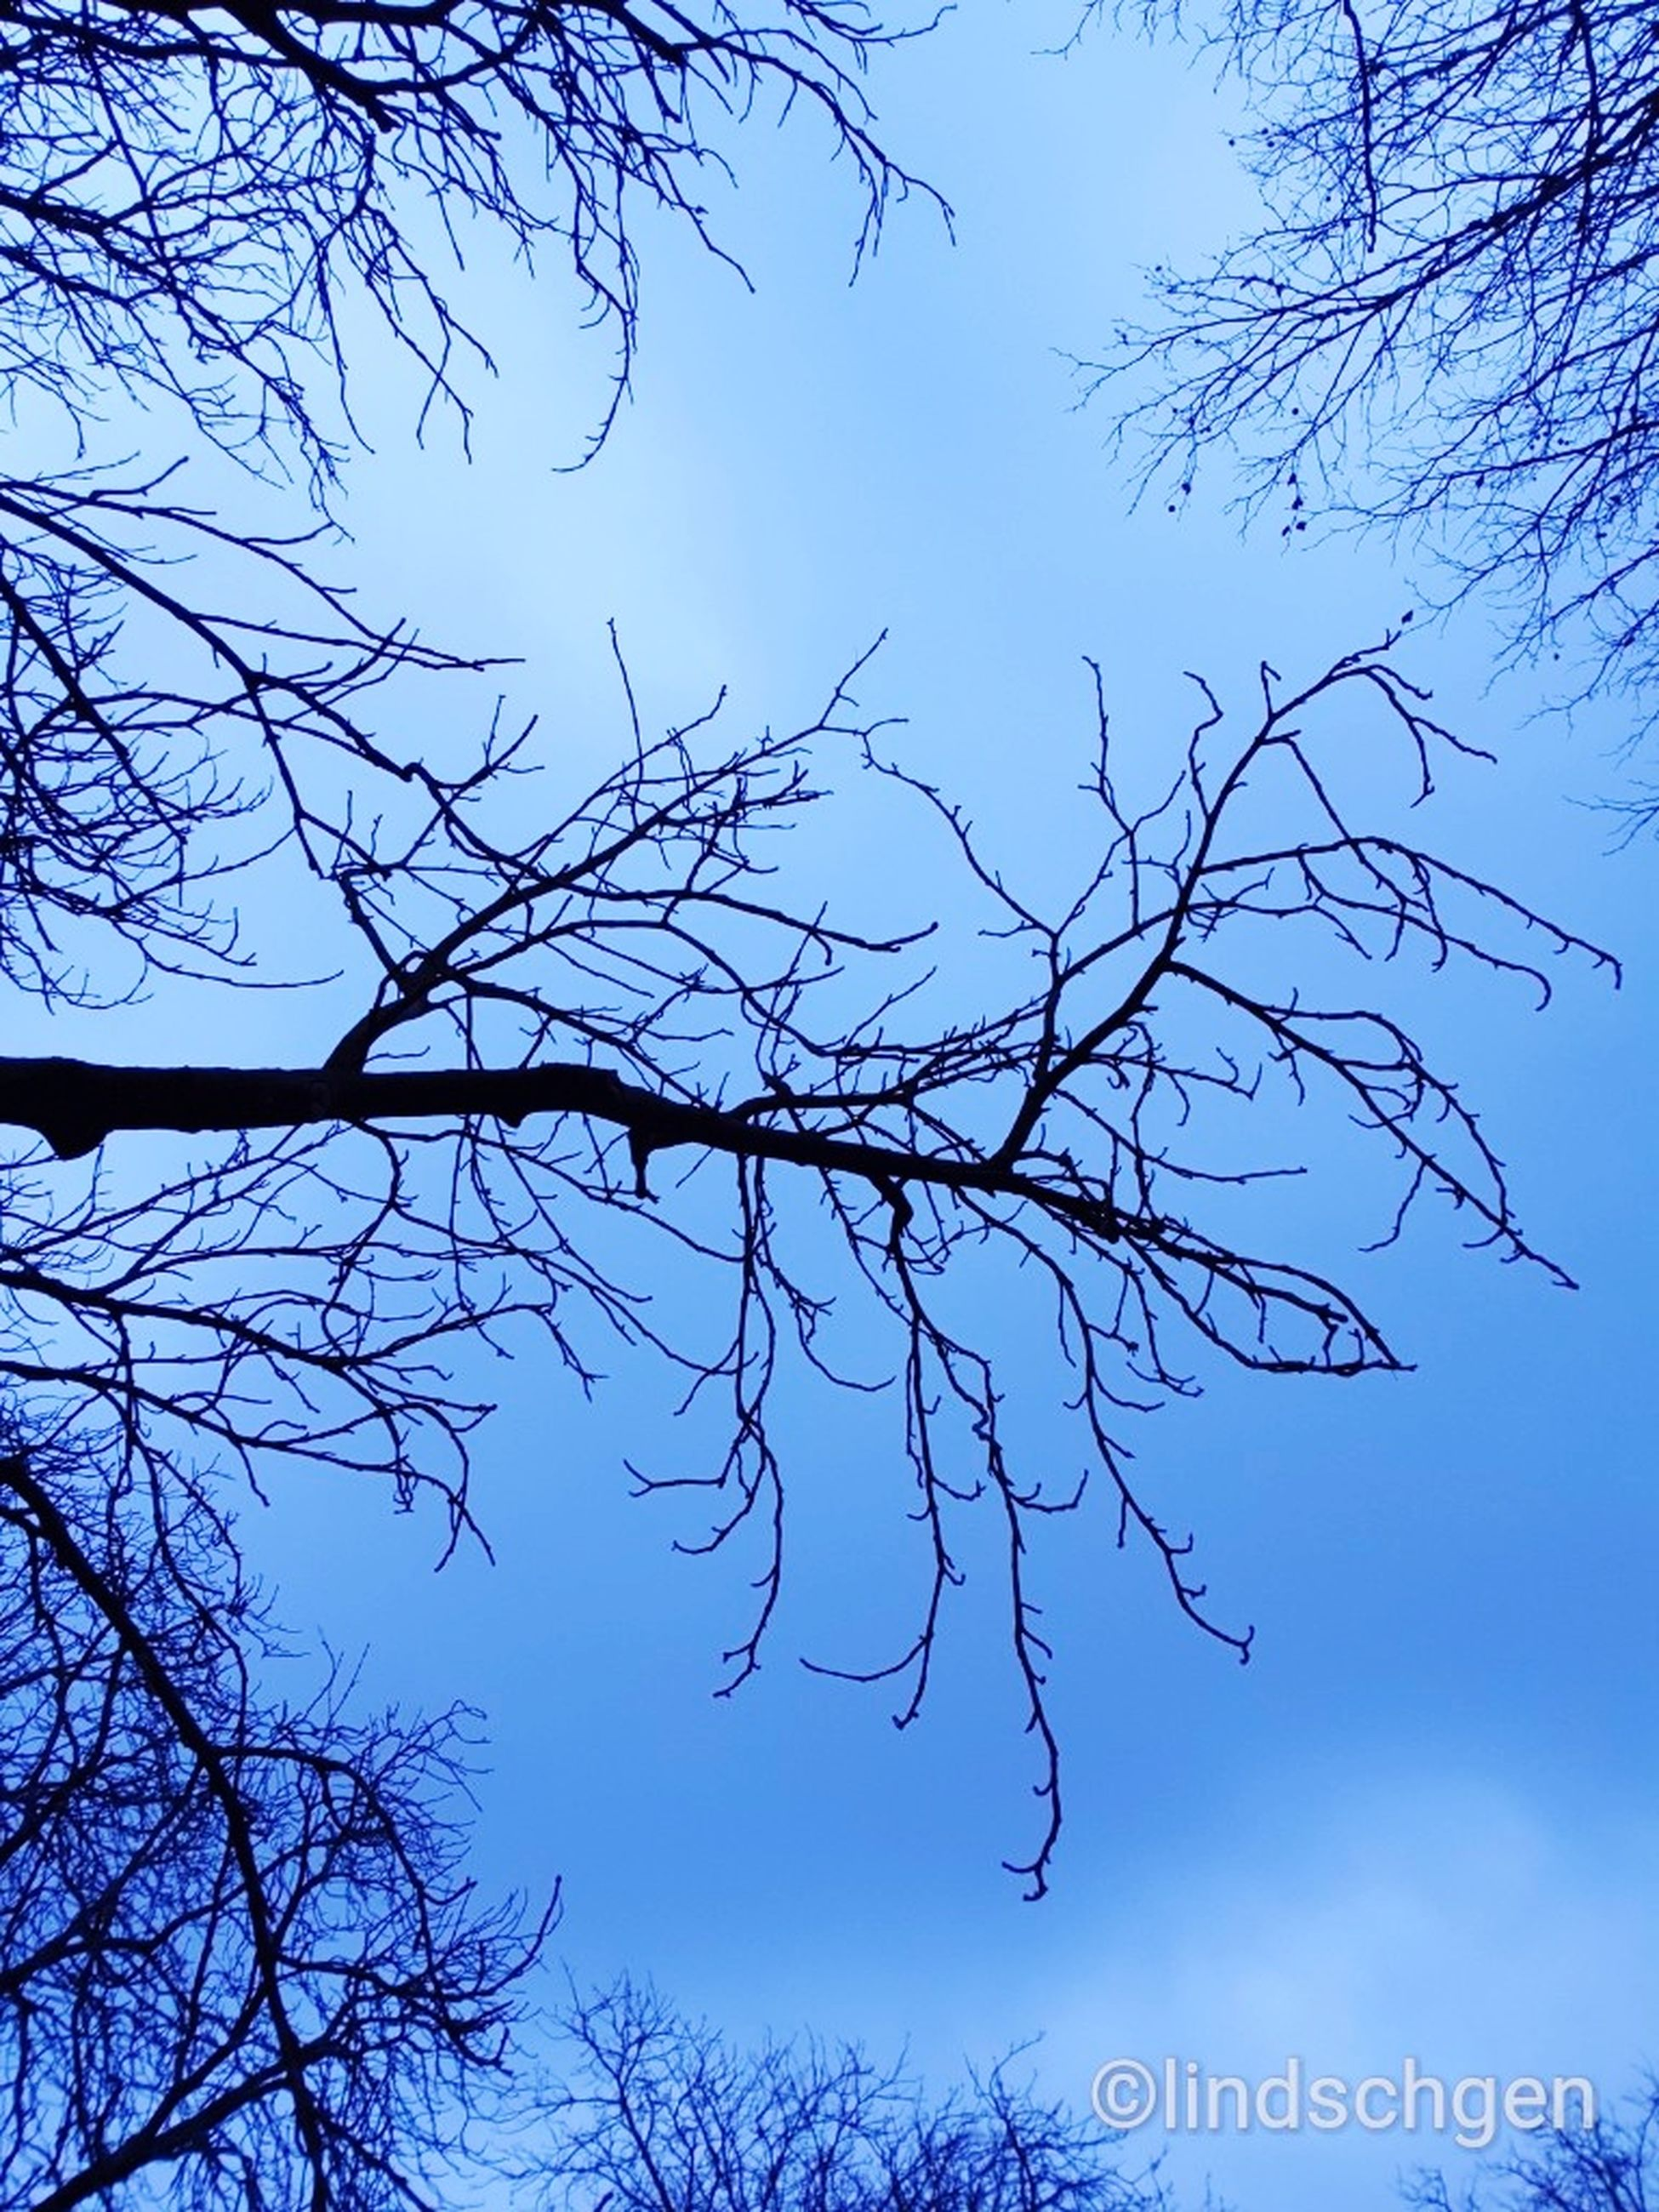 tree, branch, sky, plant, nature, beauty in nature, bare tree, low angle view, no people, silhouette, blue, tranquility, clear sky, outdoors, day, scenics - nature, growth, tranquil scene, dusk